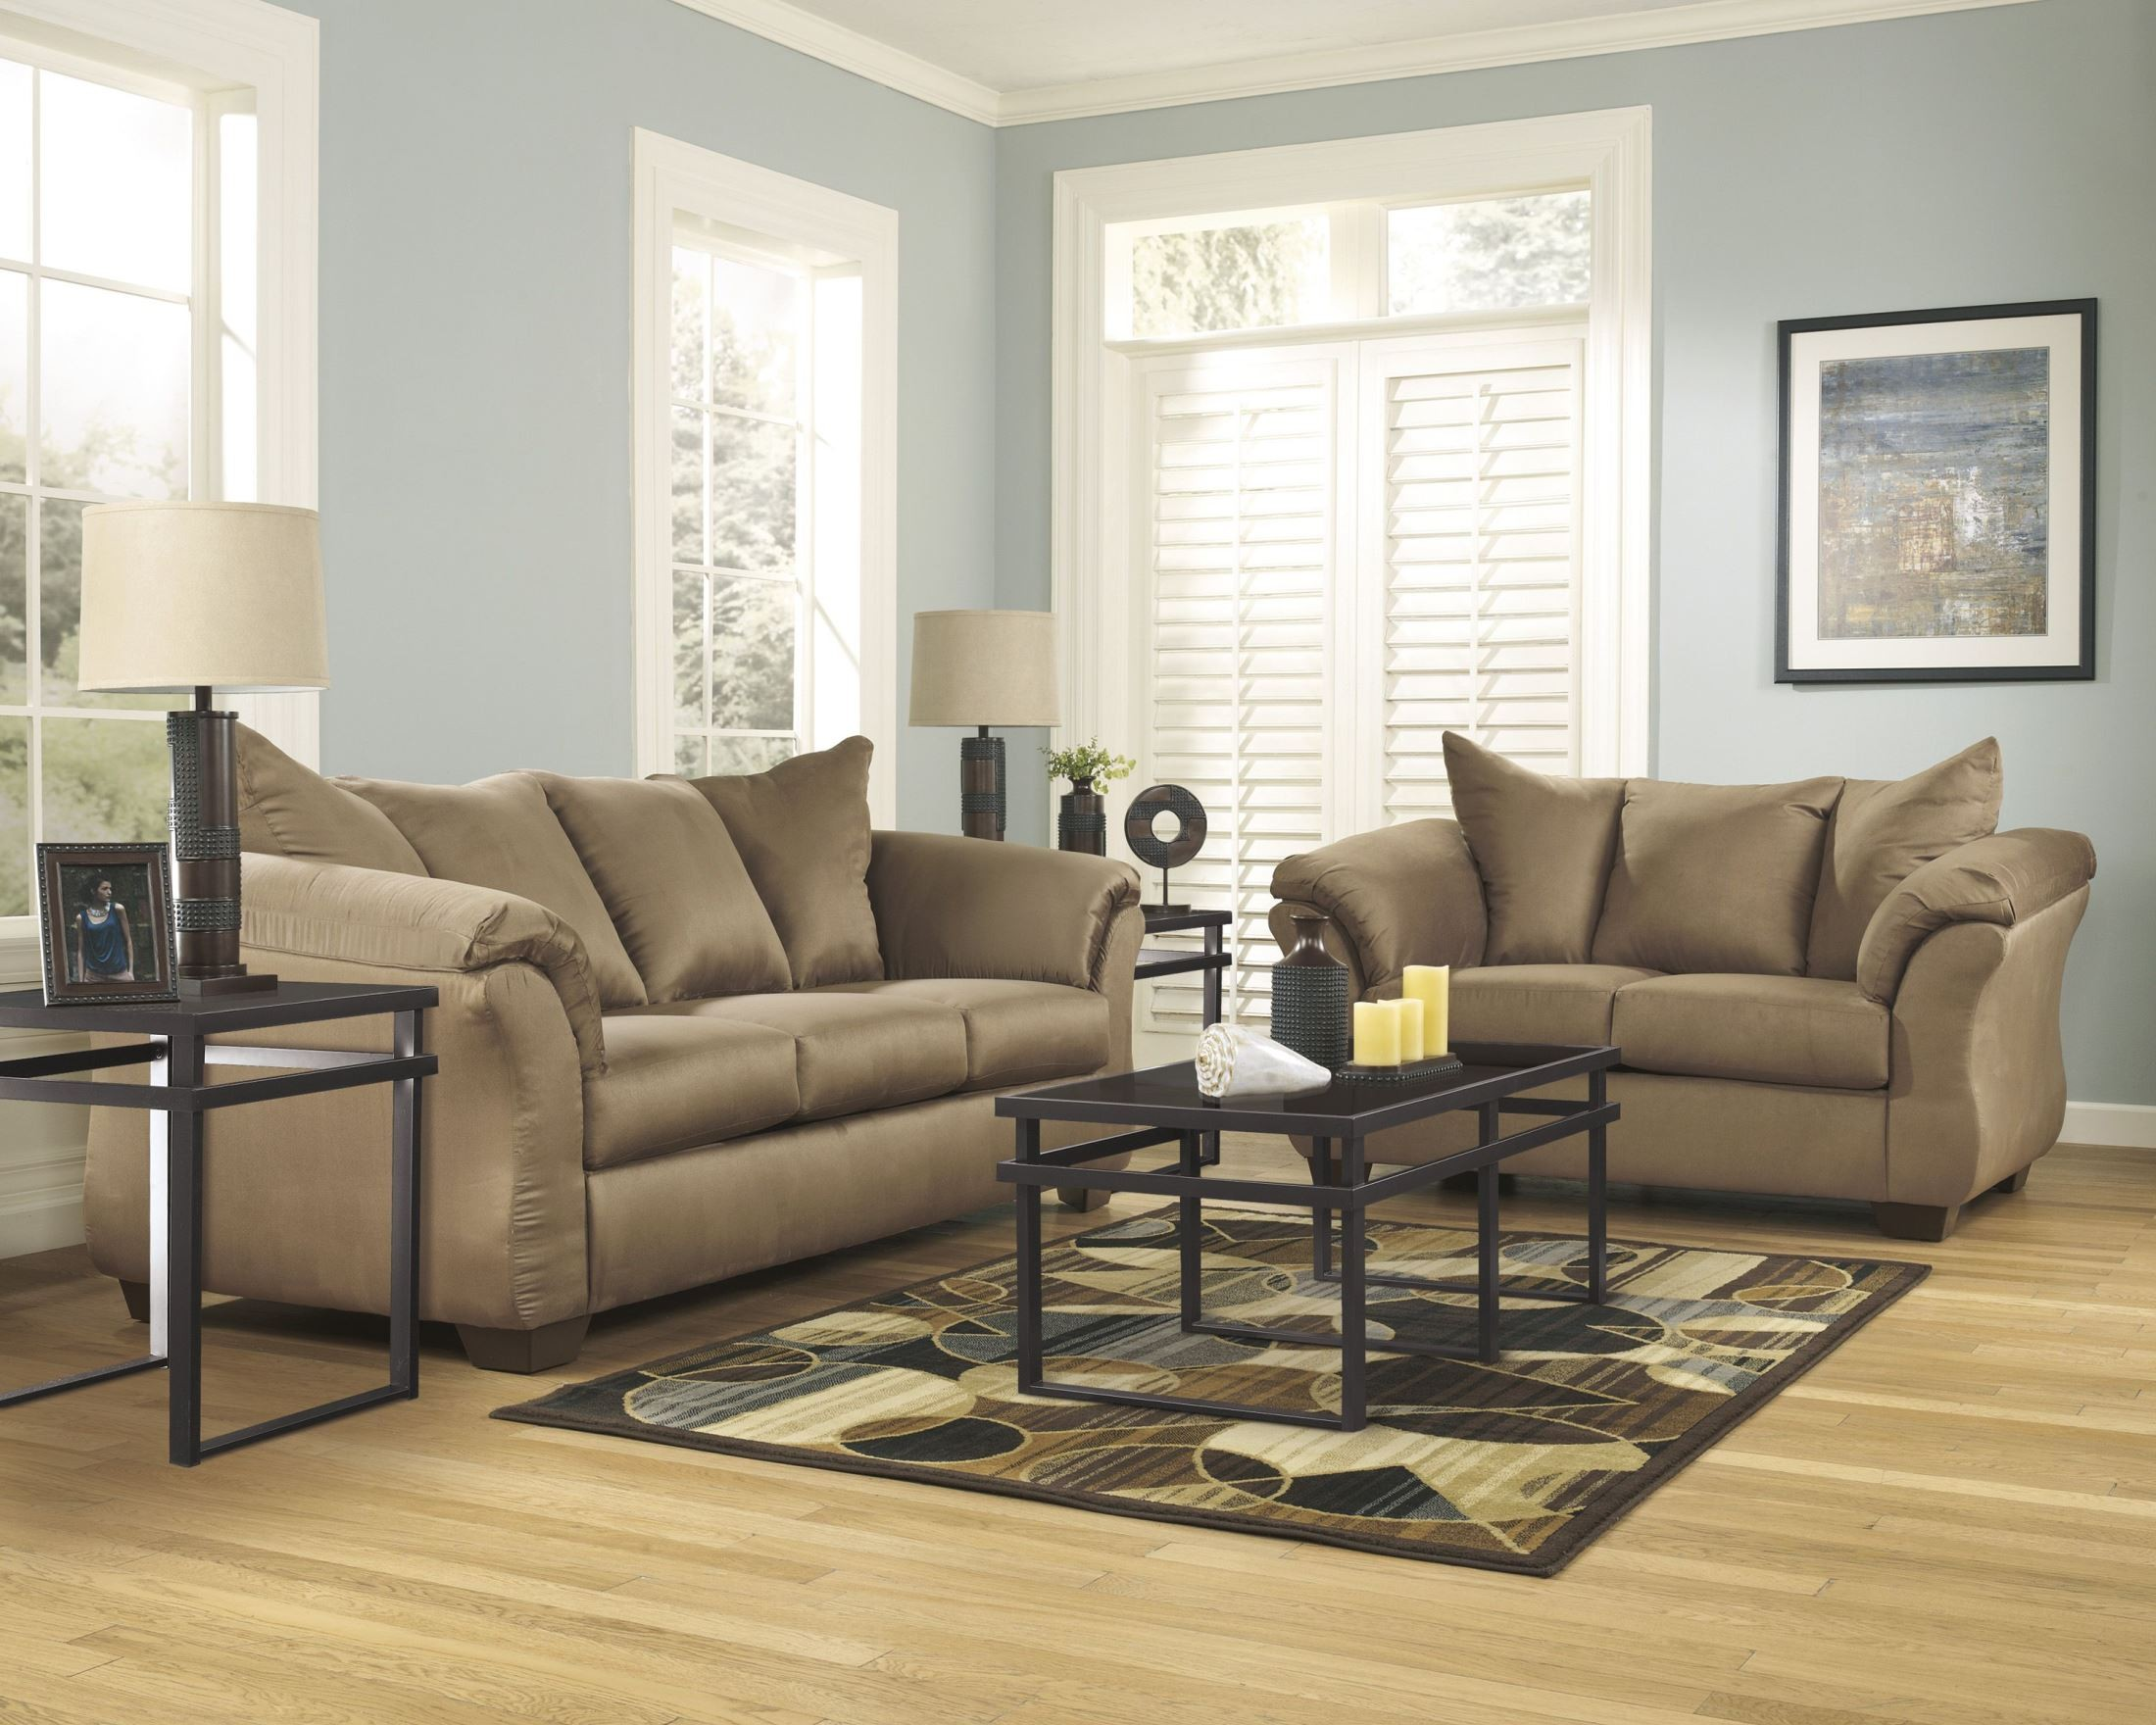 darcy sofa chaise ashley furniture what is the most comfortable bed mattress mocha sectional 7500218